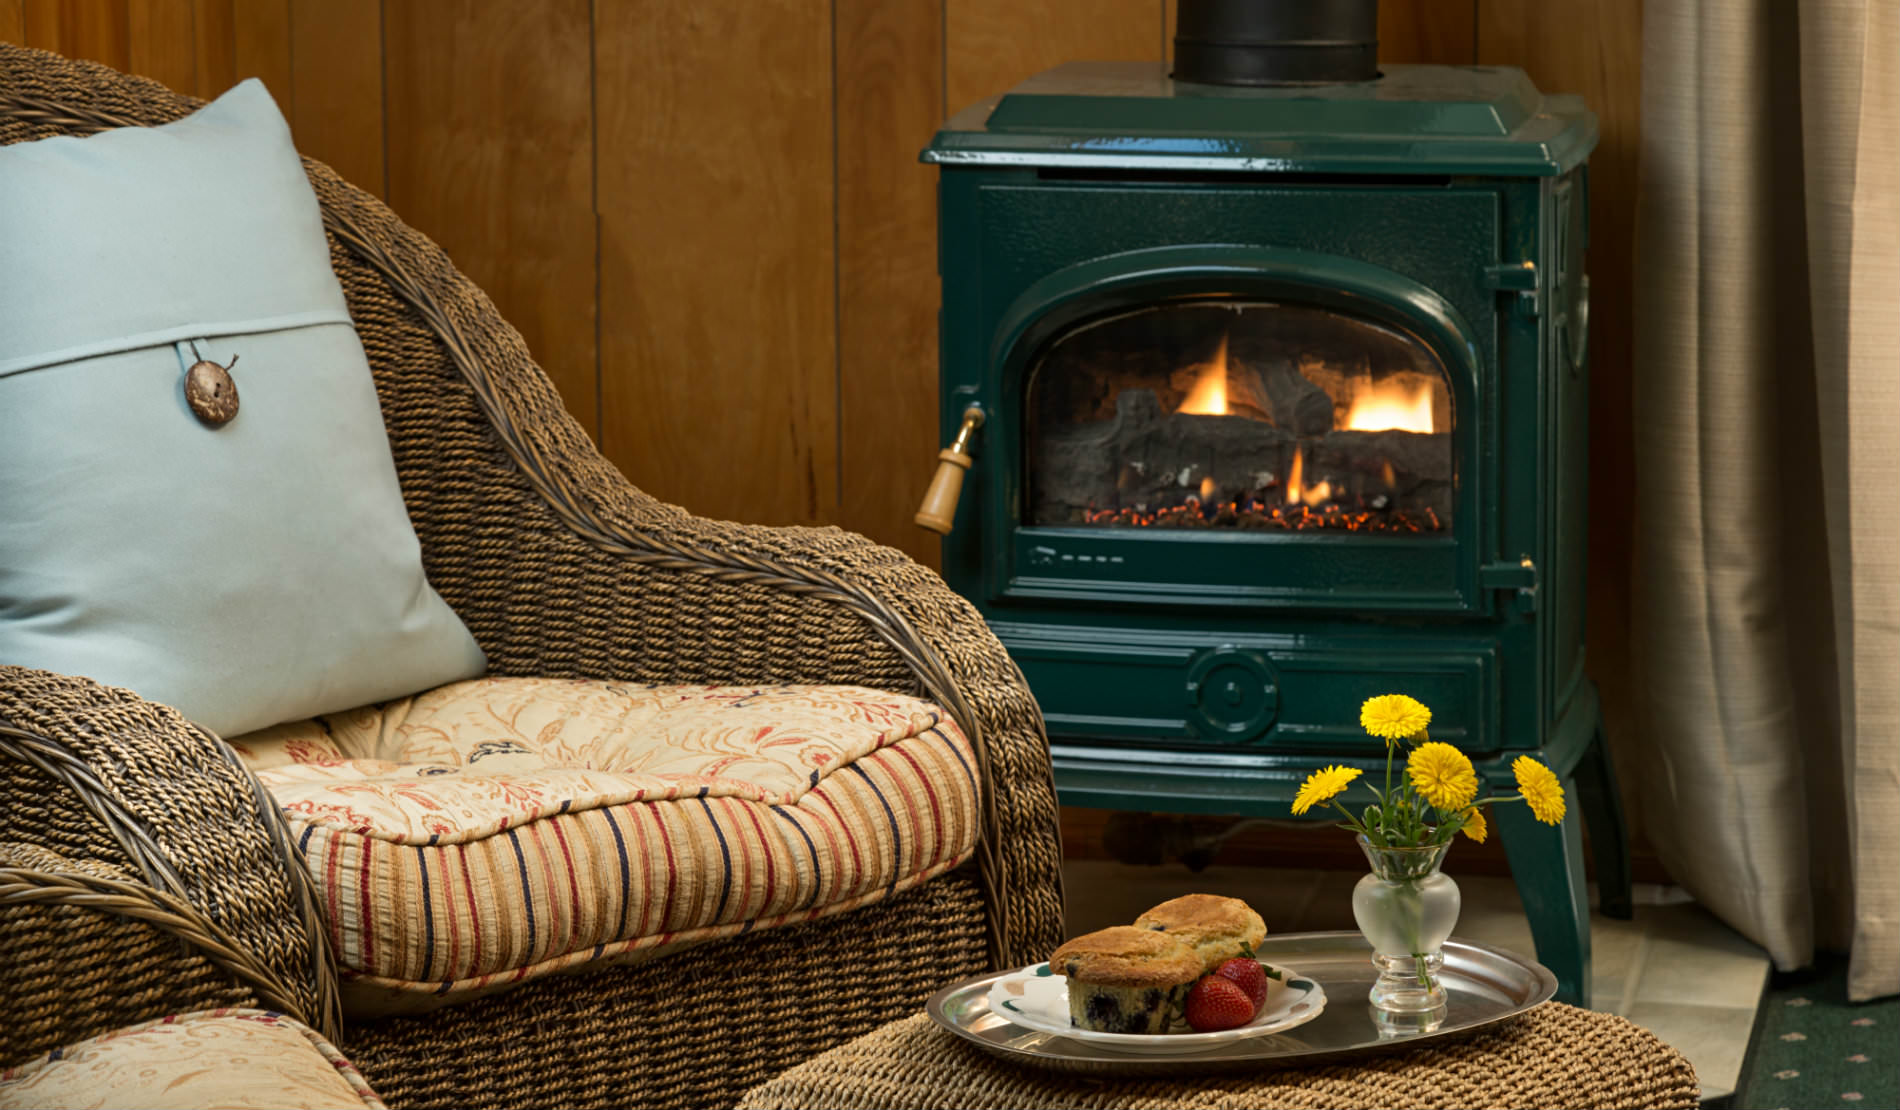 Brown wicker chair with green and patterend cusions in front of wood burning stove